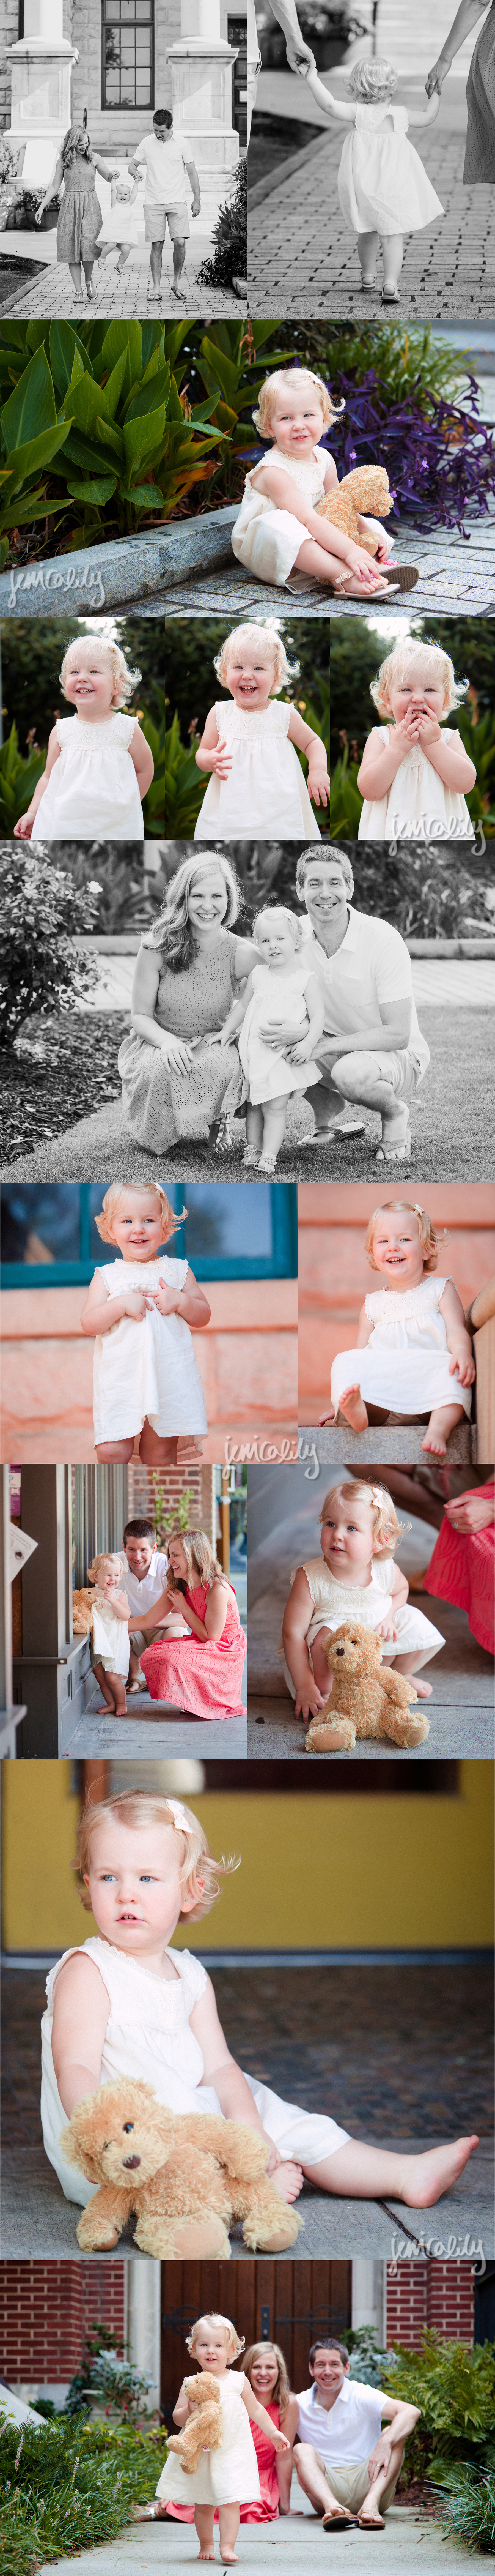 Decatur Family Portrait by Jessica Lily